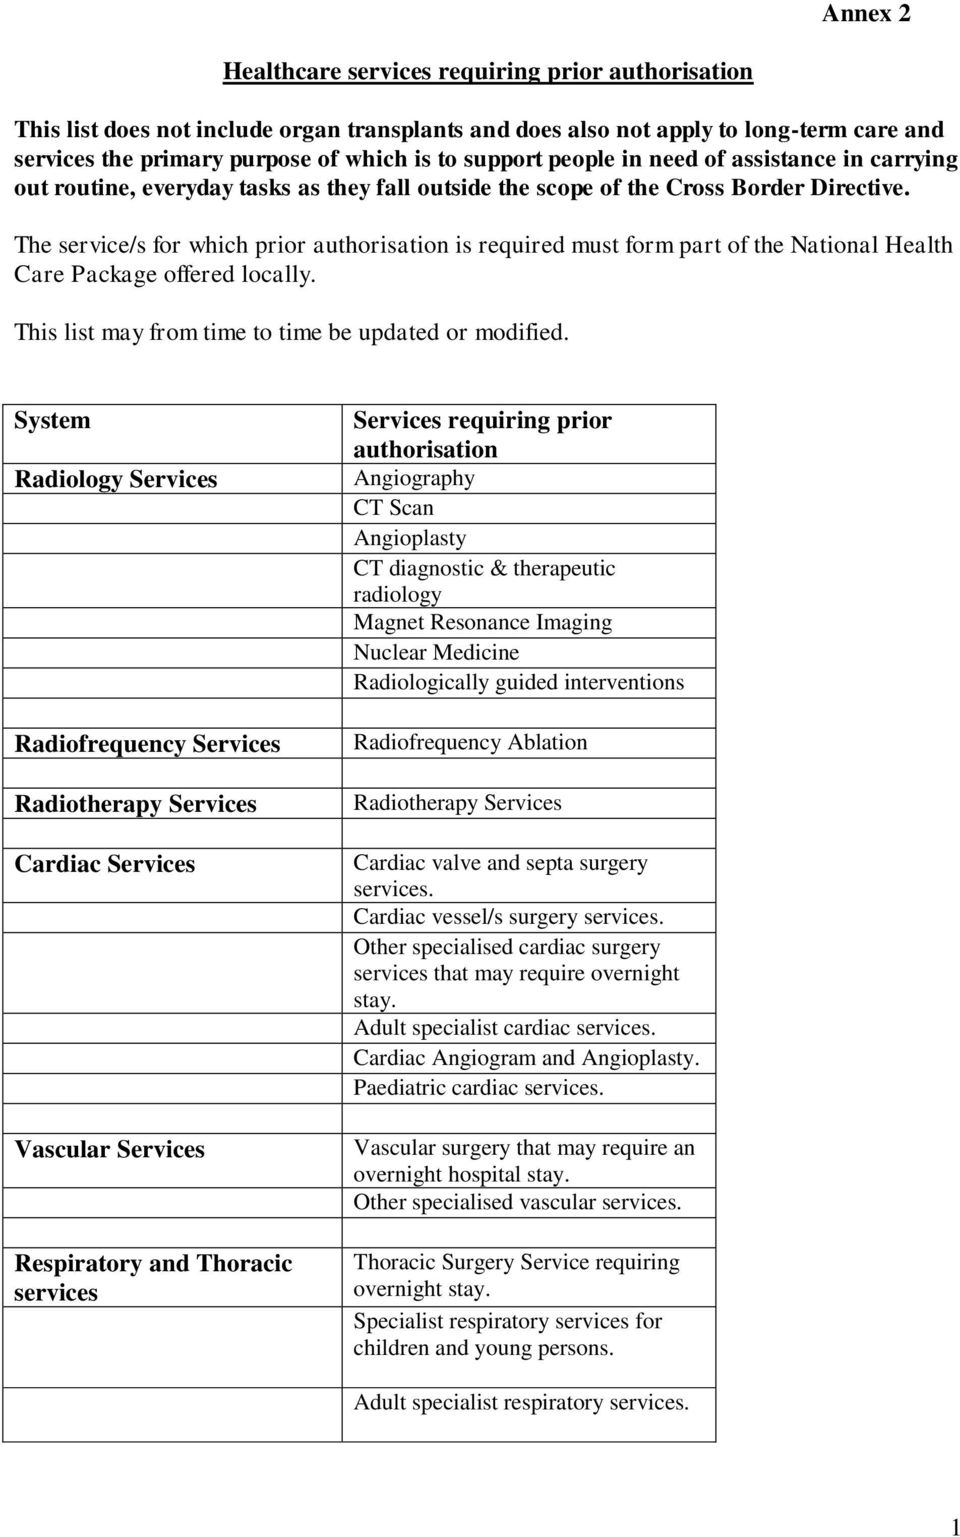 The service/s for which prior authorisation is required must form part of the National Health Care Package offered locally. This list may from time to time be updated or modified.